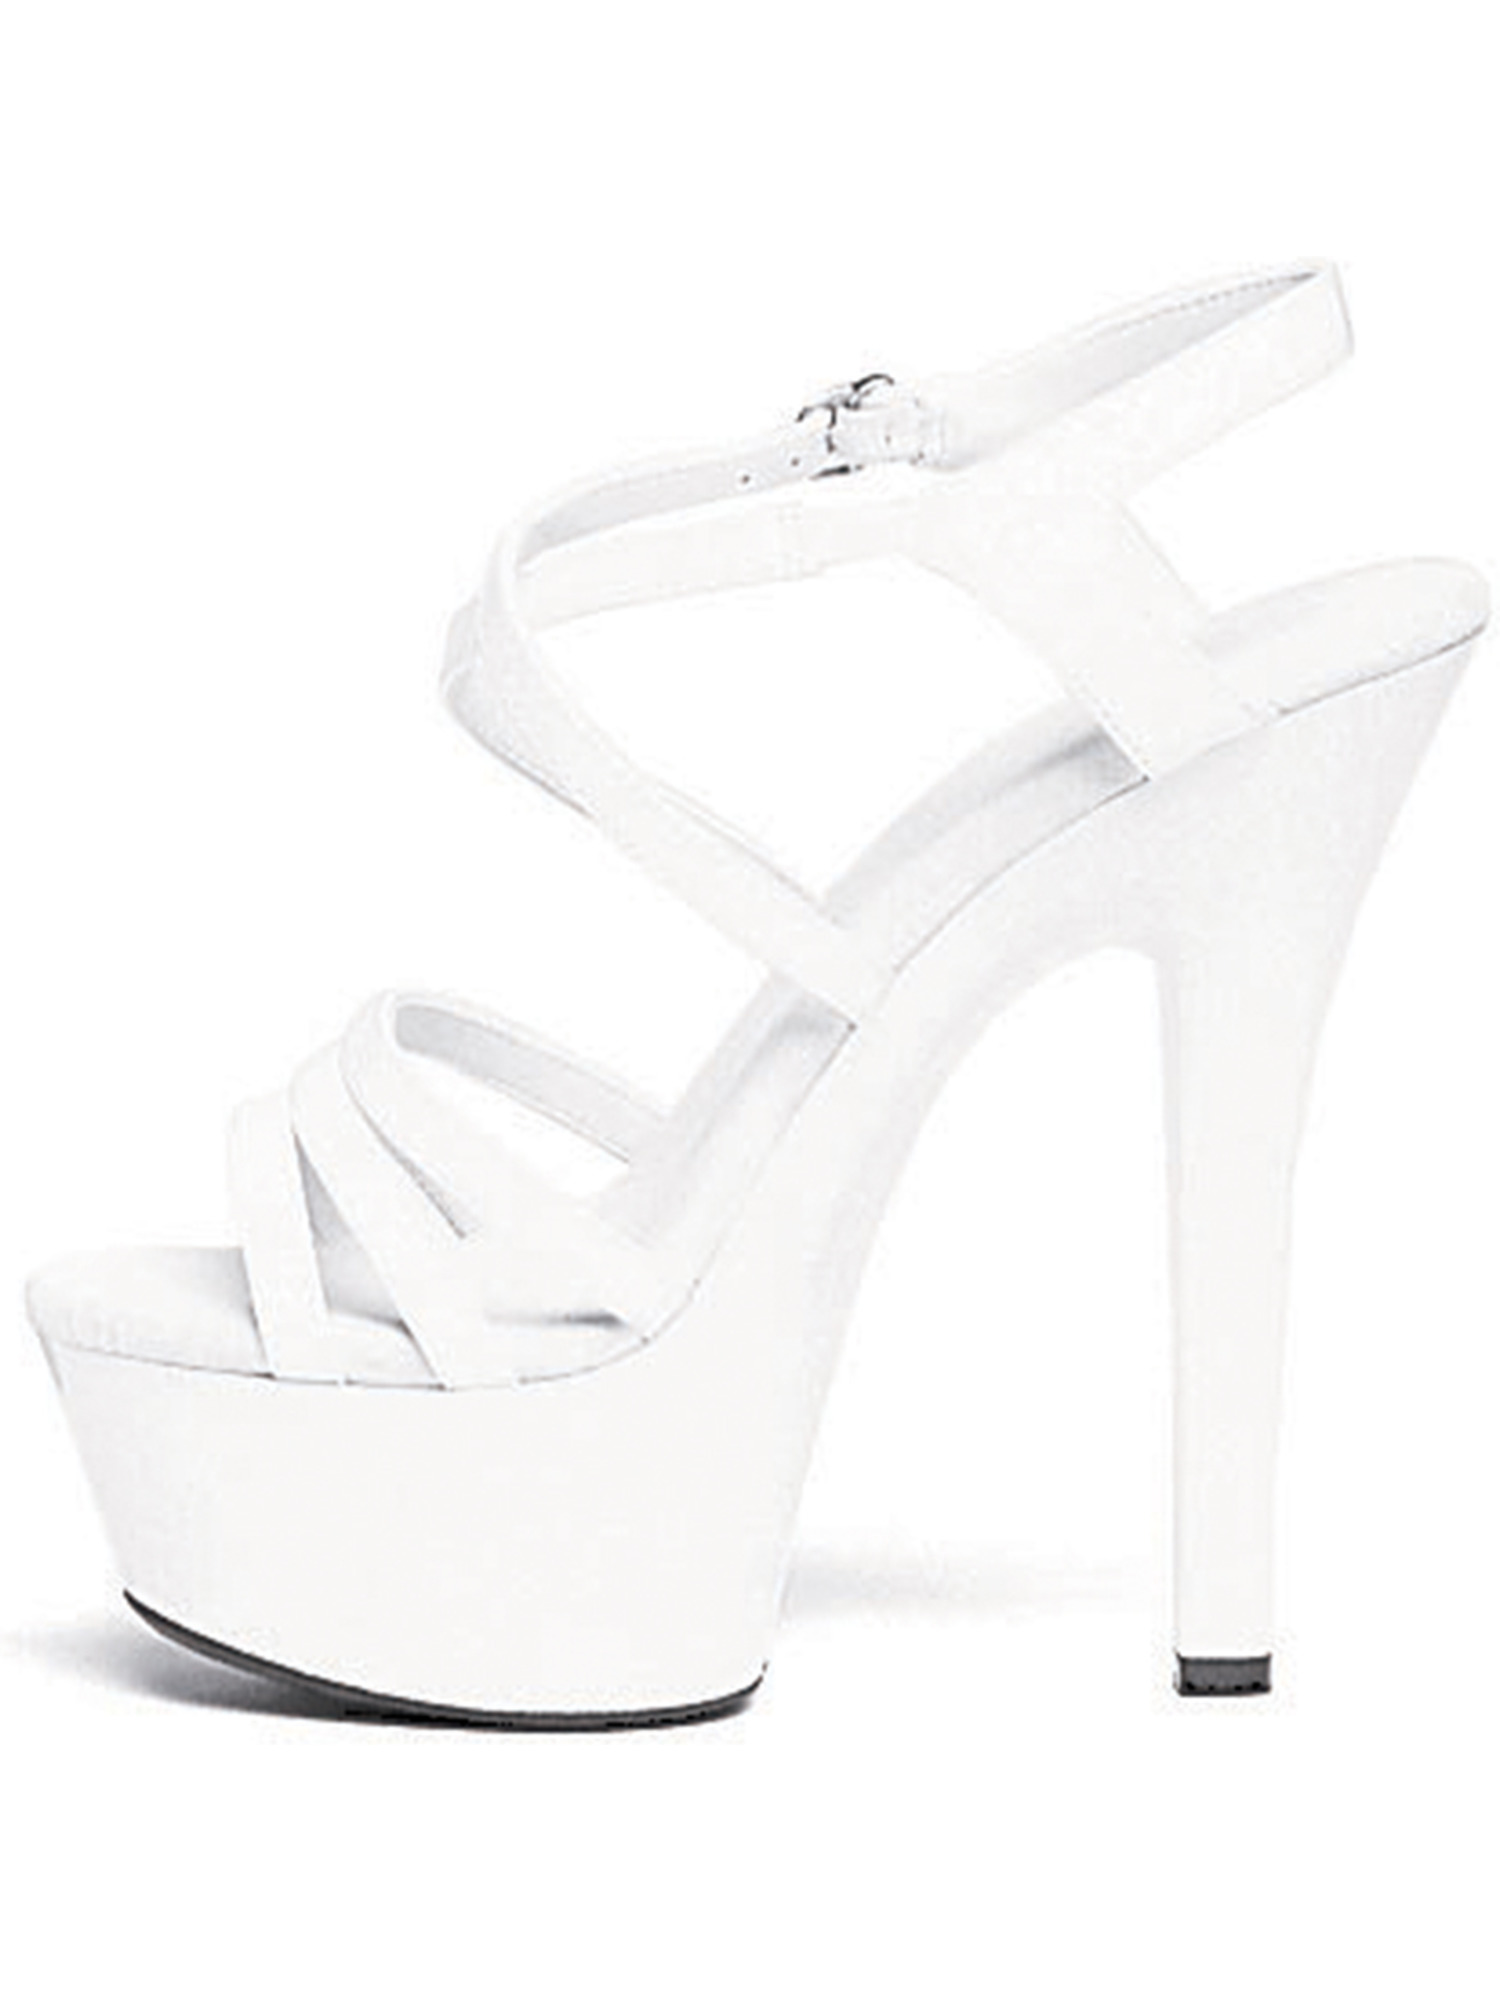 6 Inch Women's Sexy Strappy Shoes Mid Platform Sandals Black White